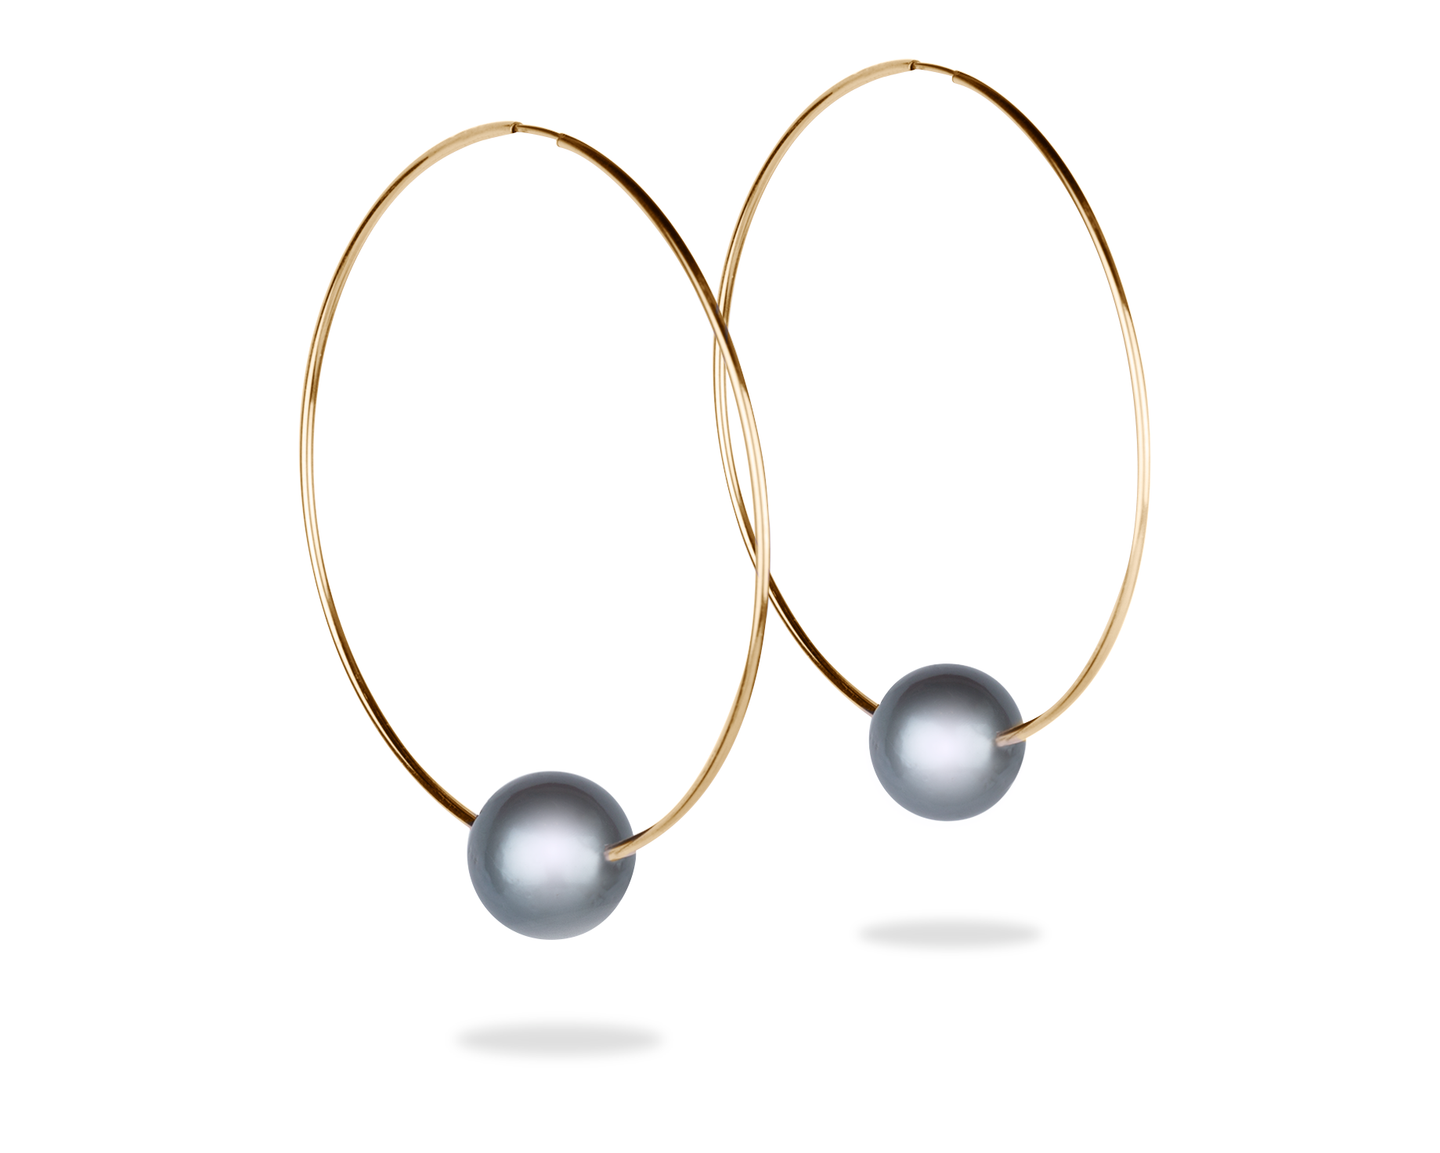 gold hoop earrings with black tahitian pearl